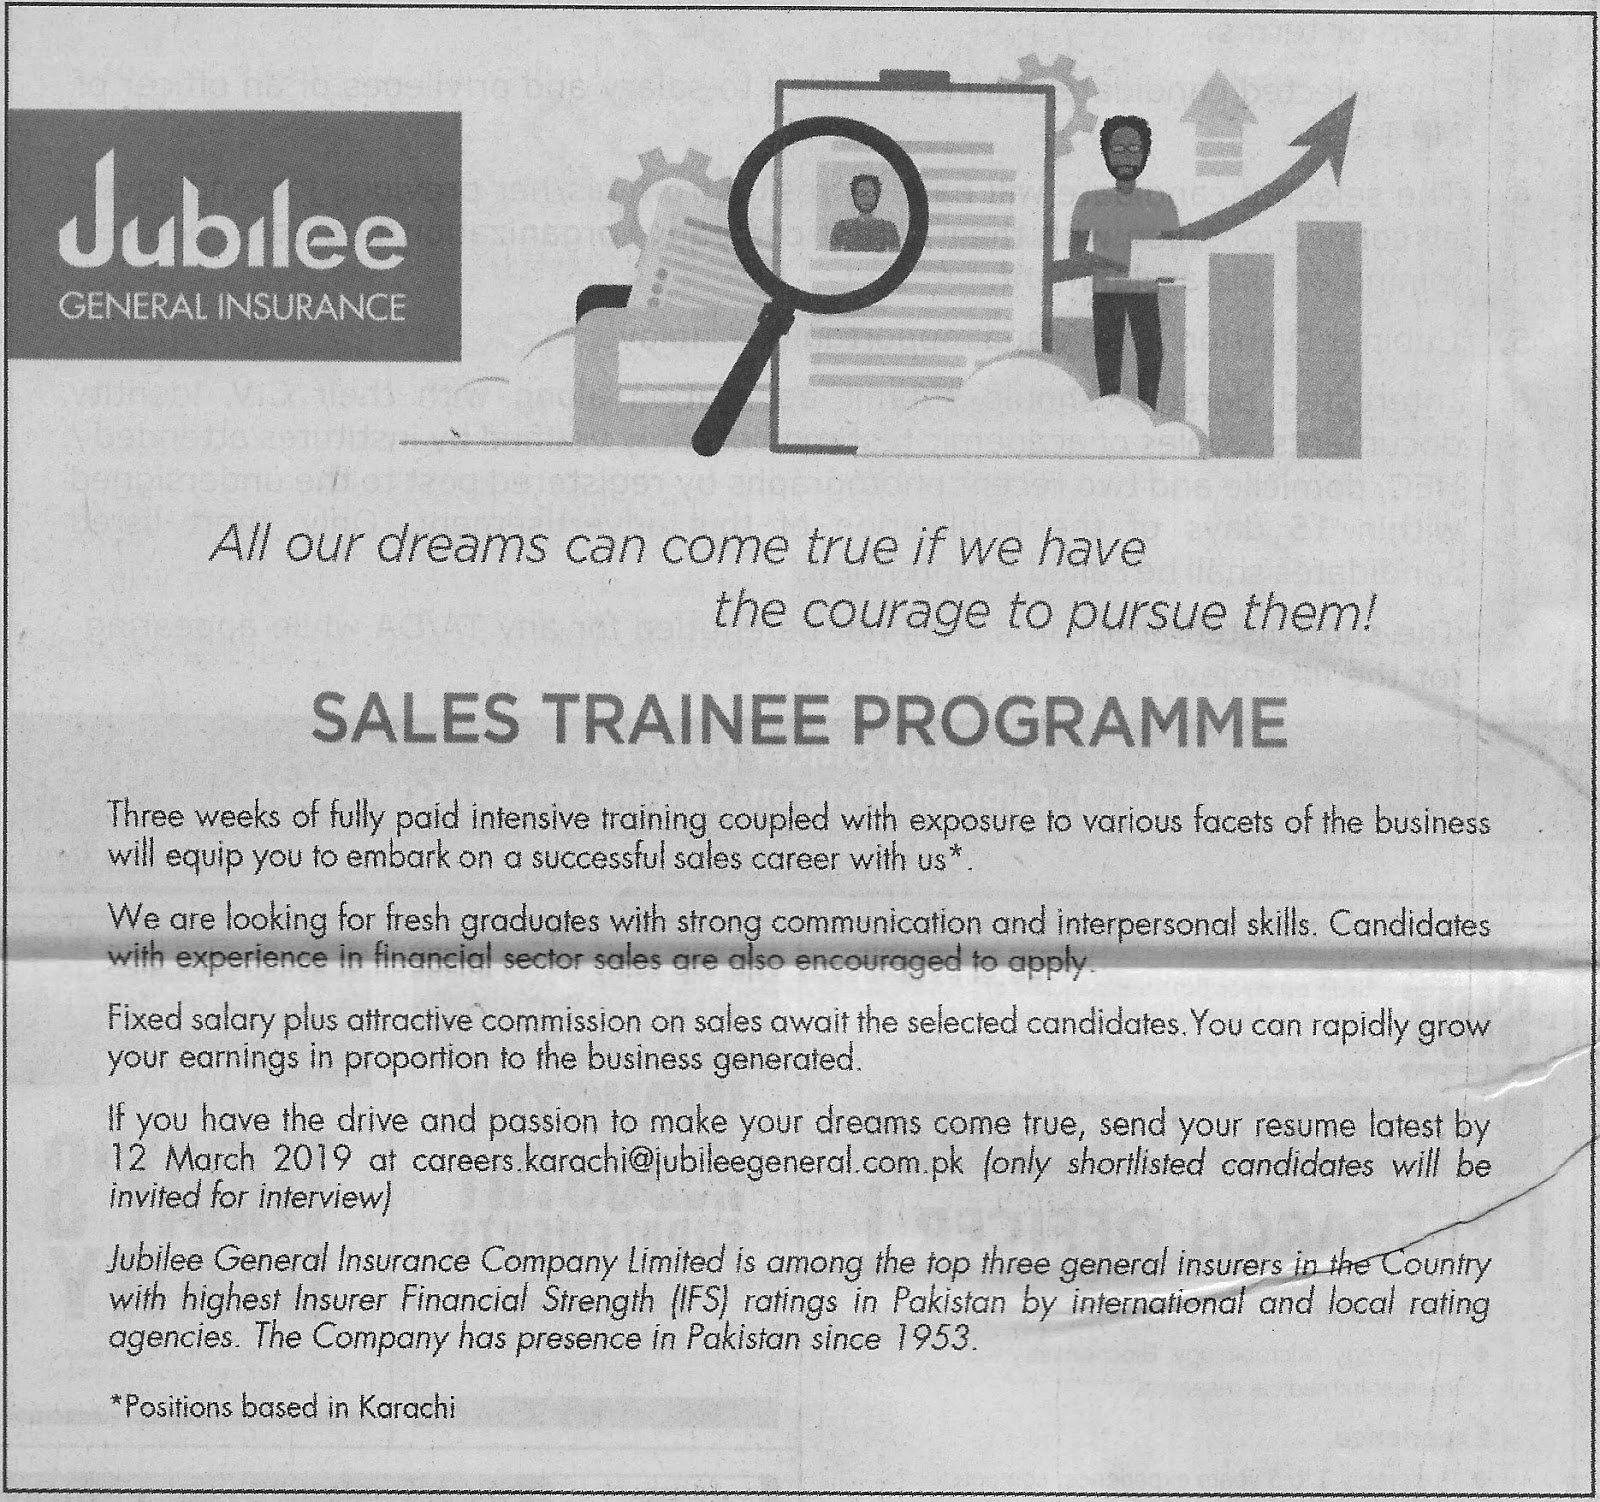 Jubilee General Insurance Jobs 2019 for Sales Trainee Programme Latest Jubilee Life Insurance jobs 2019